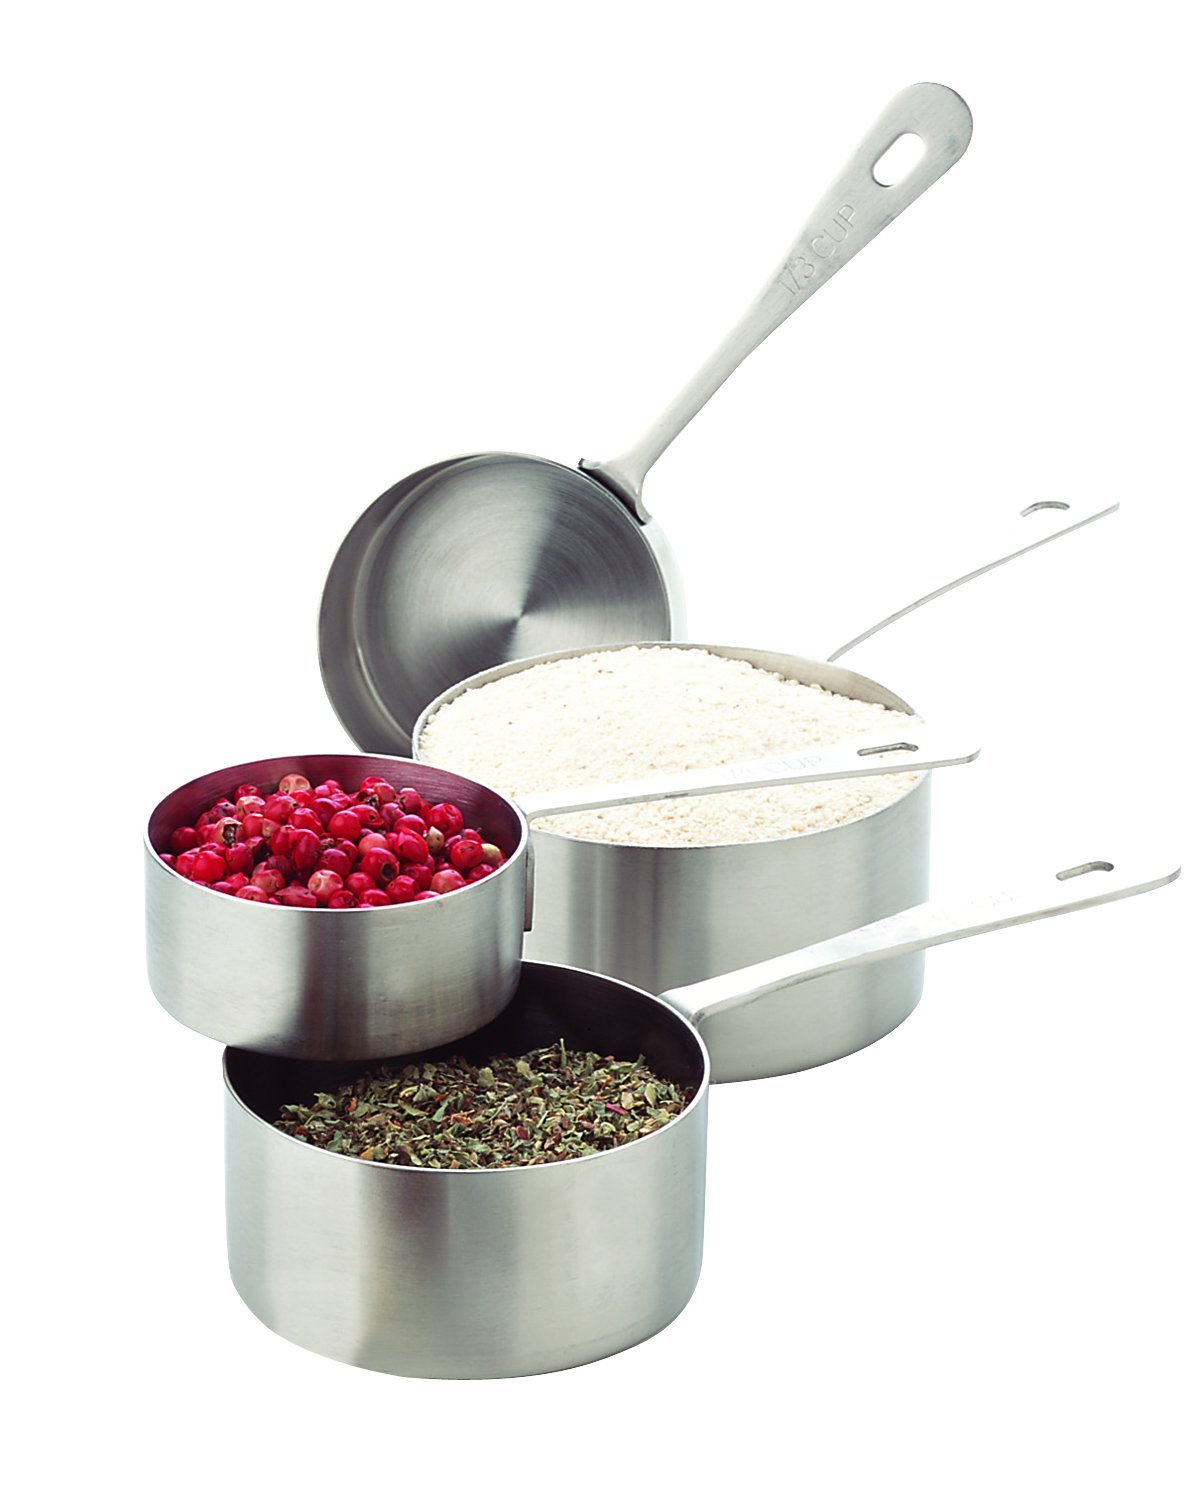 Amco Stainless Steel Measuring Cups, Set of 4